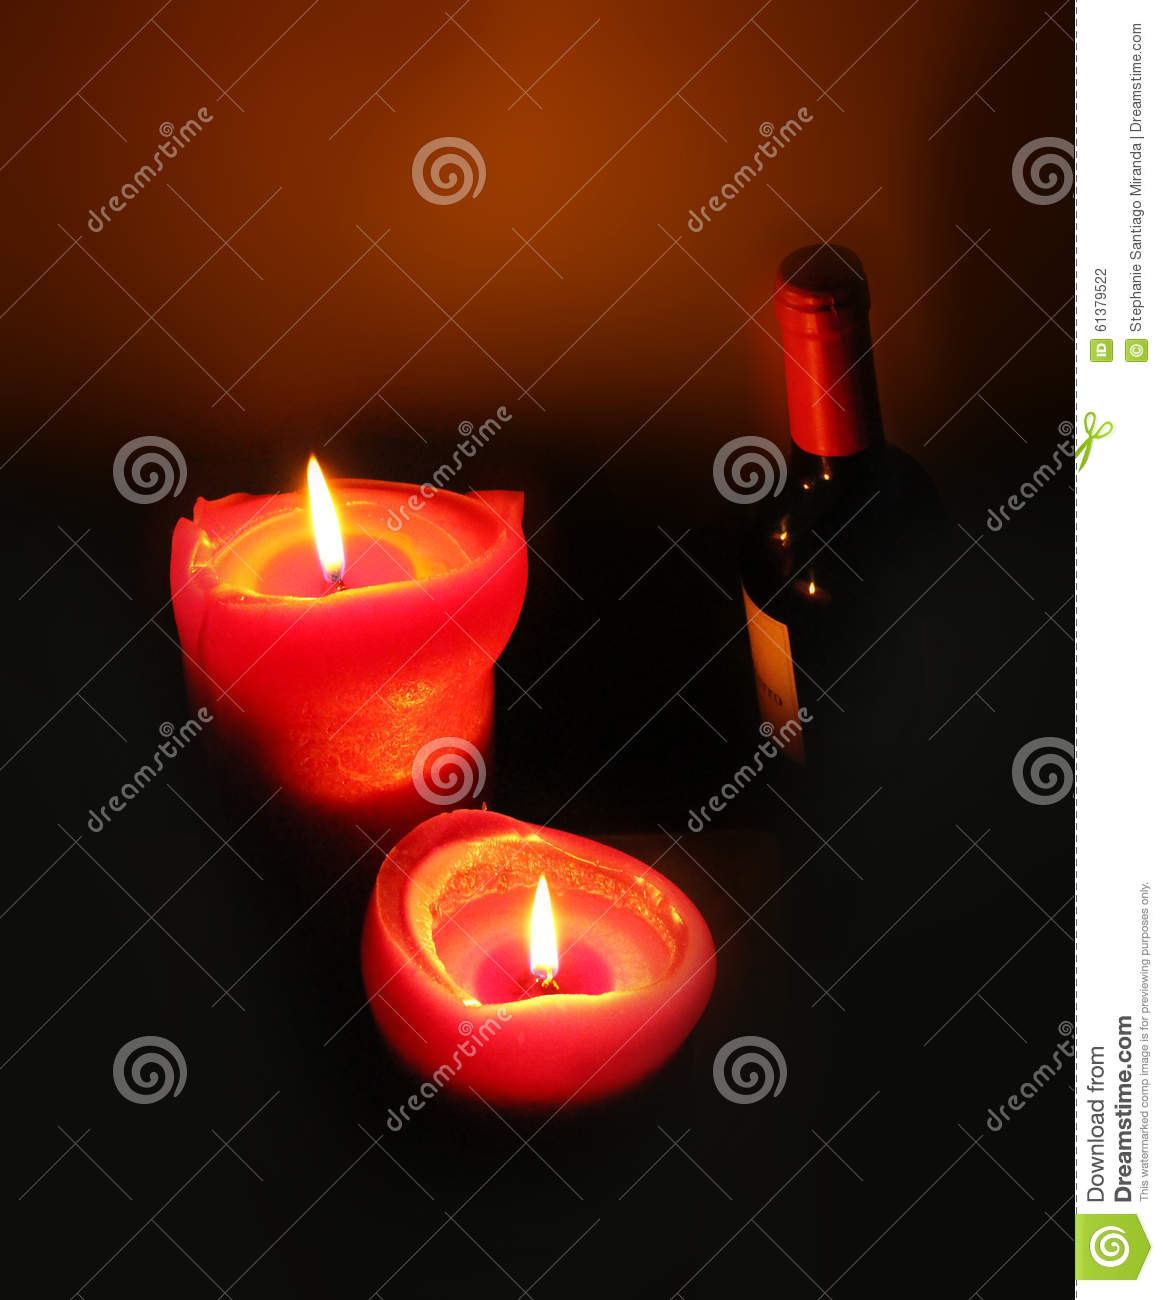 Two Lit Candles And A Bottle Of Red Wine Stock Photo - Image: 61379522